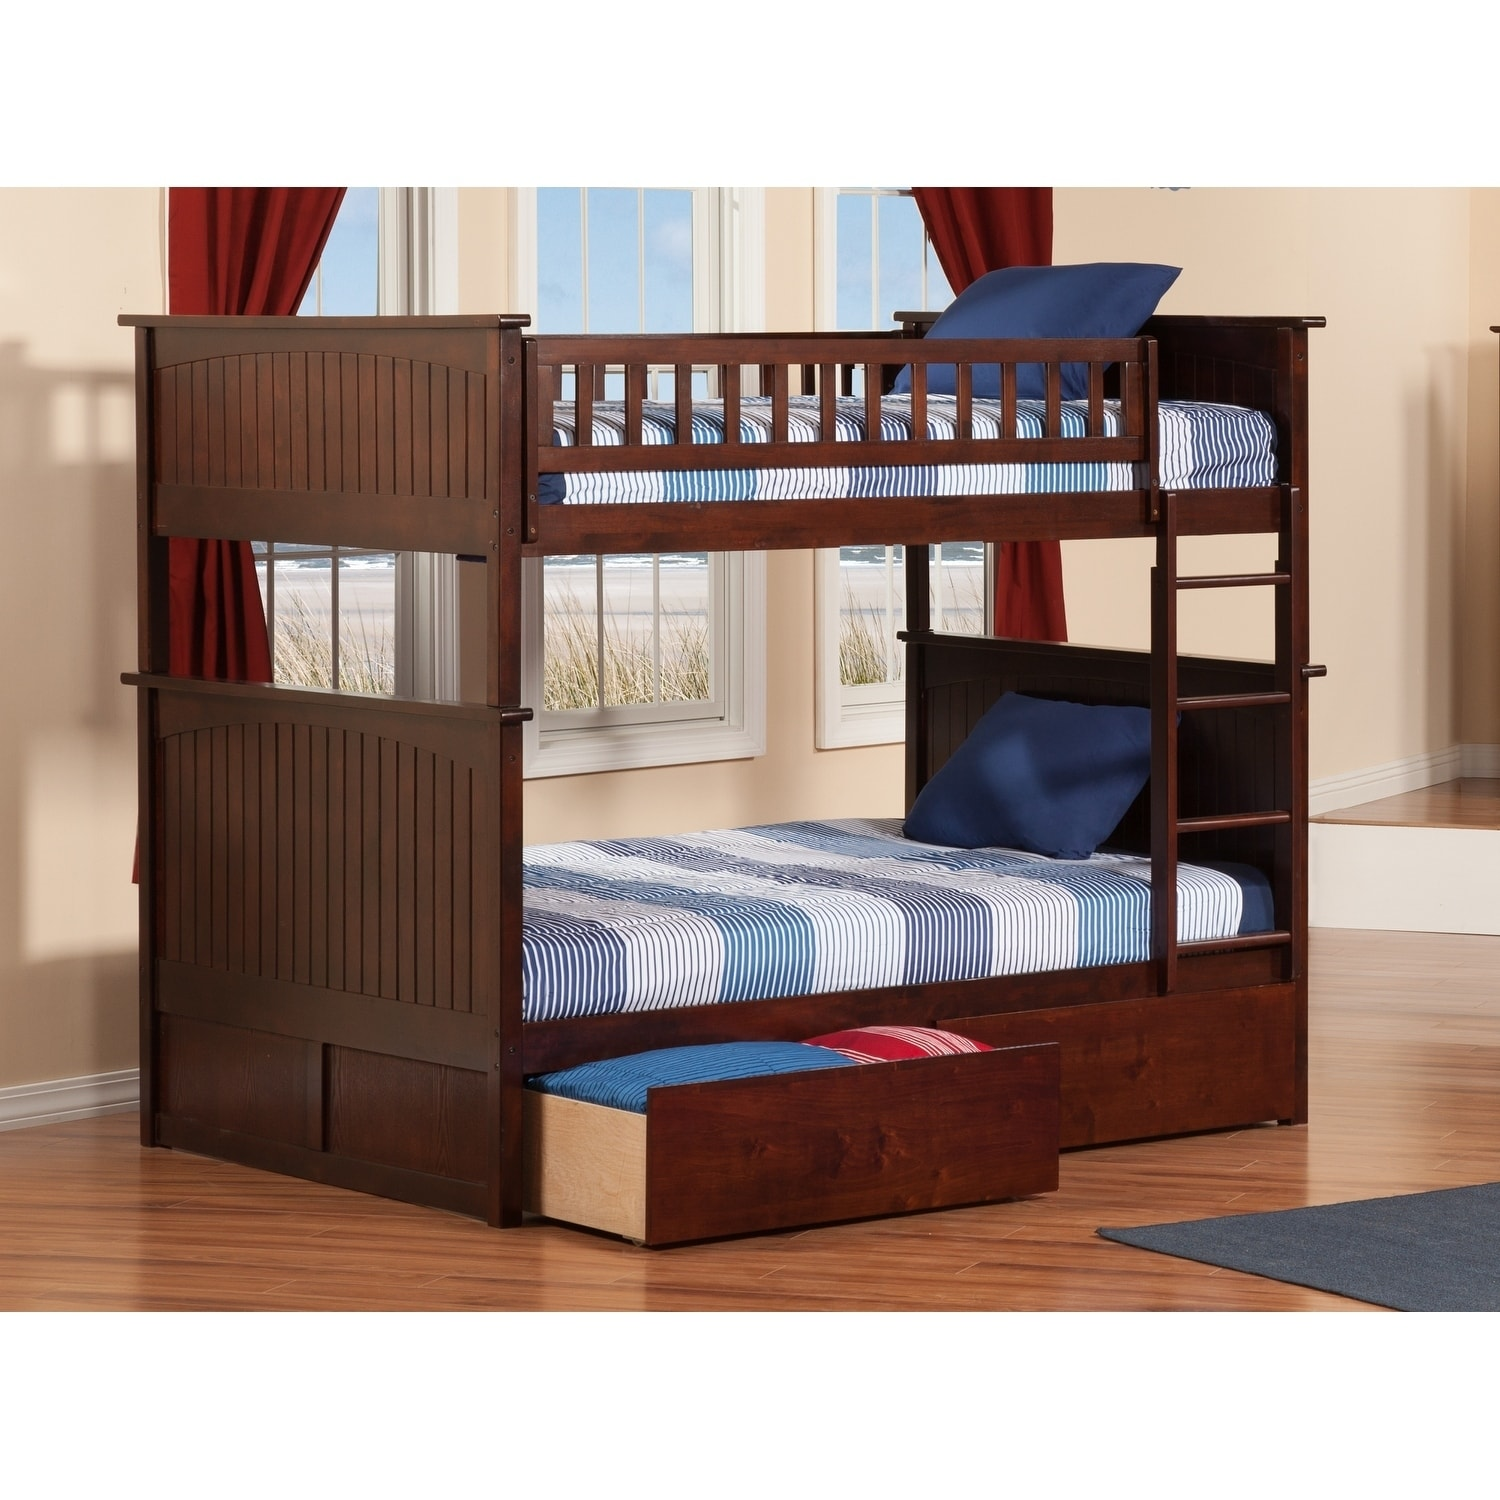 Atlantic Furniture Nantucket Bunk Bed Full over Full with...